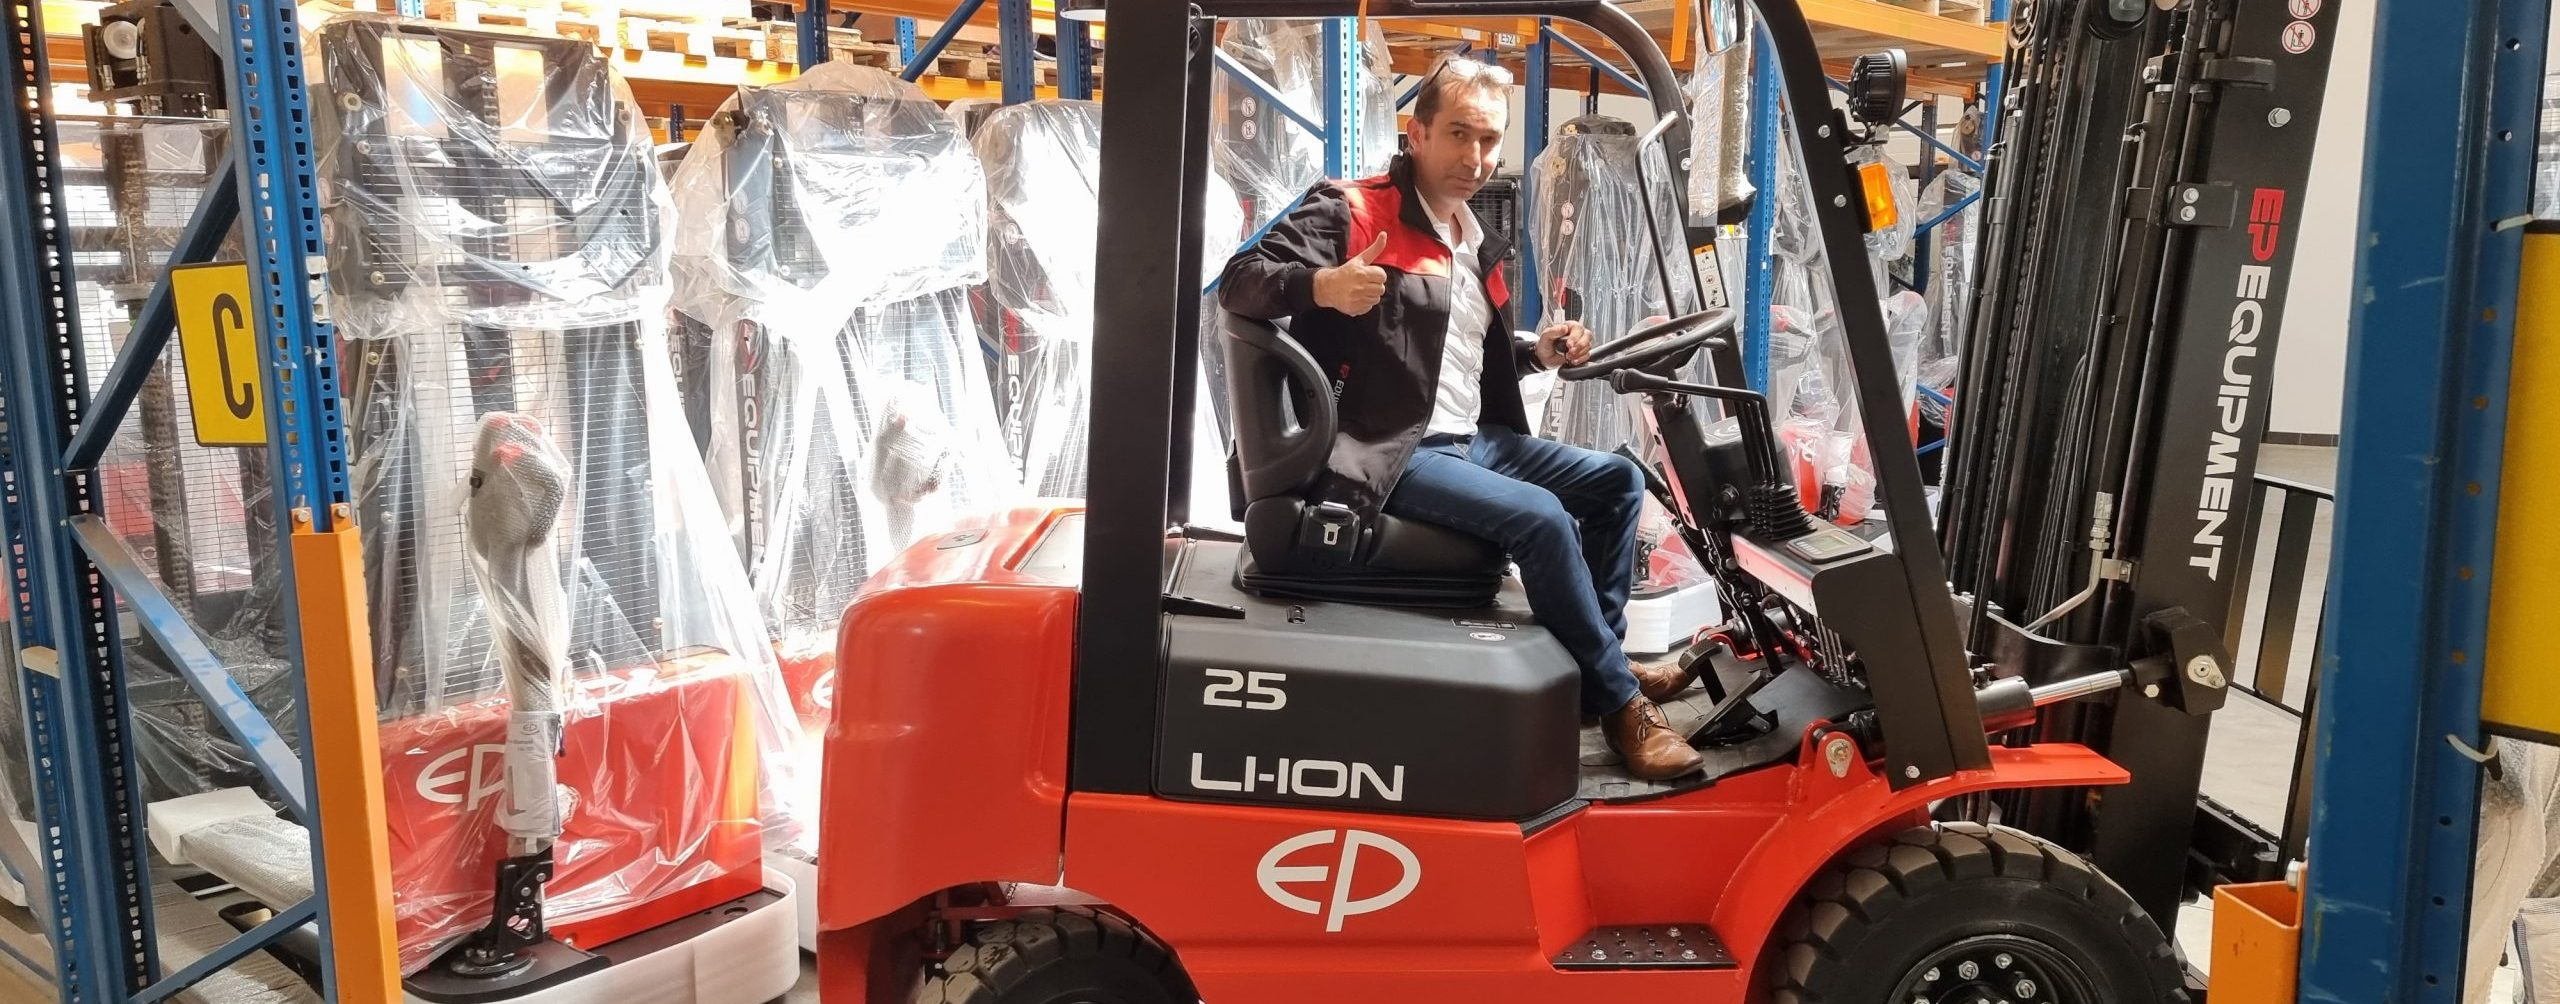 EP Welcomes New Regional Sales Manager For France - Christophe Gemain